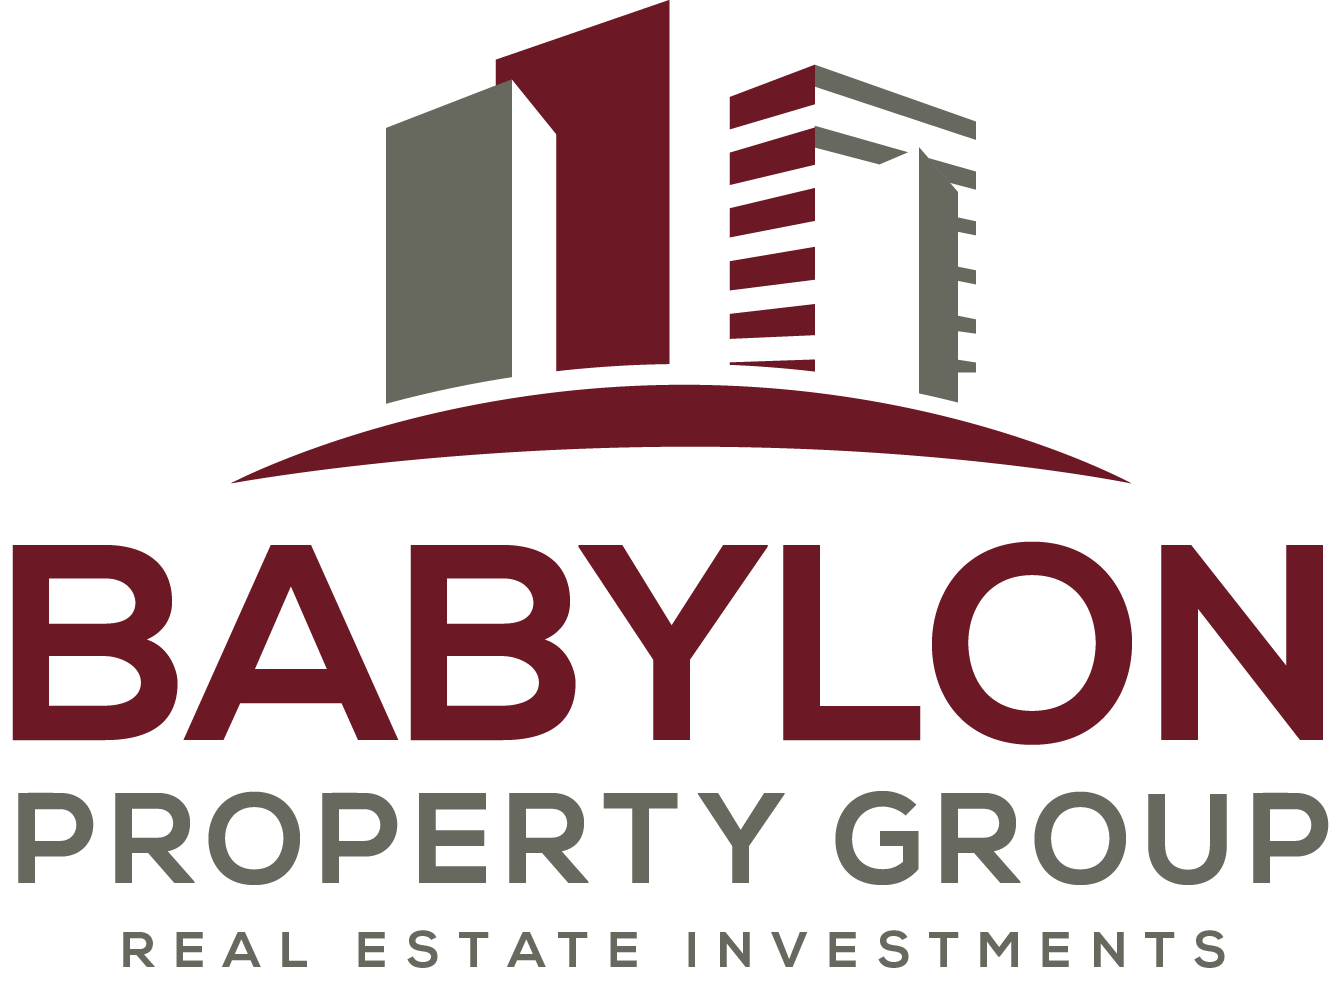 Babylon Property Group